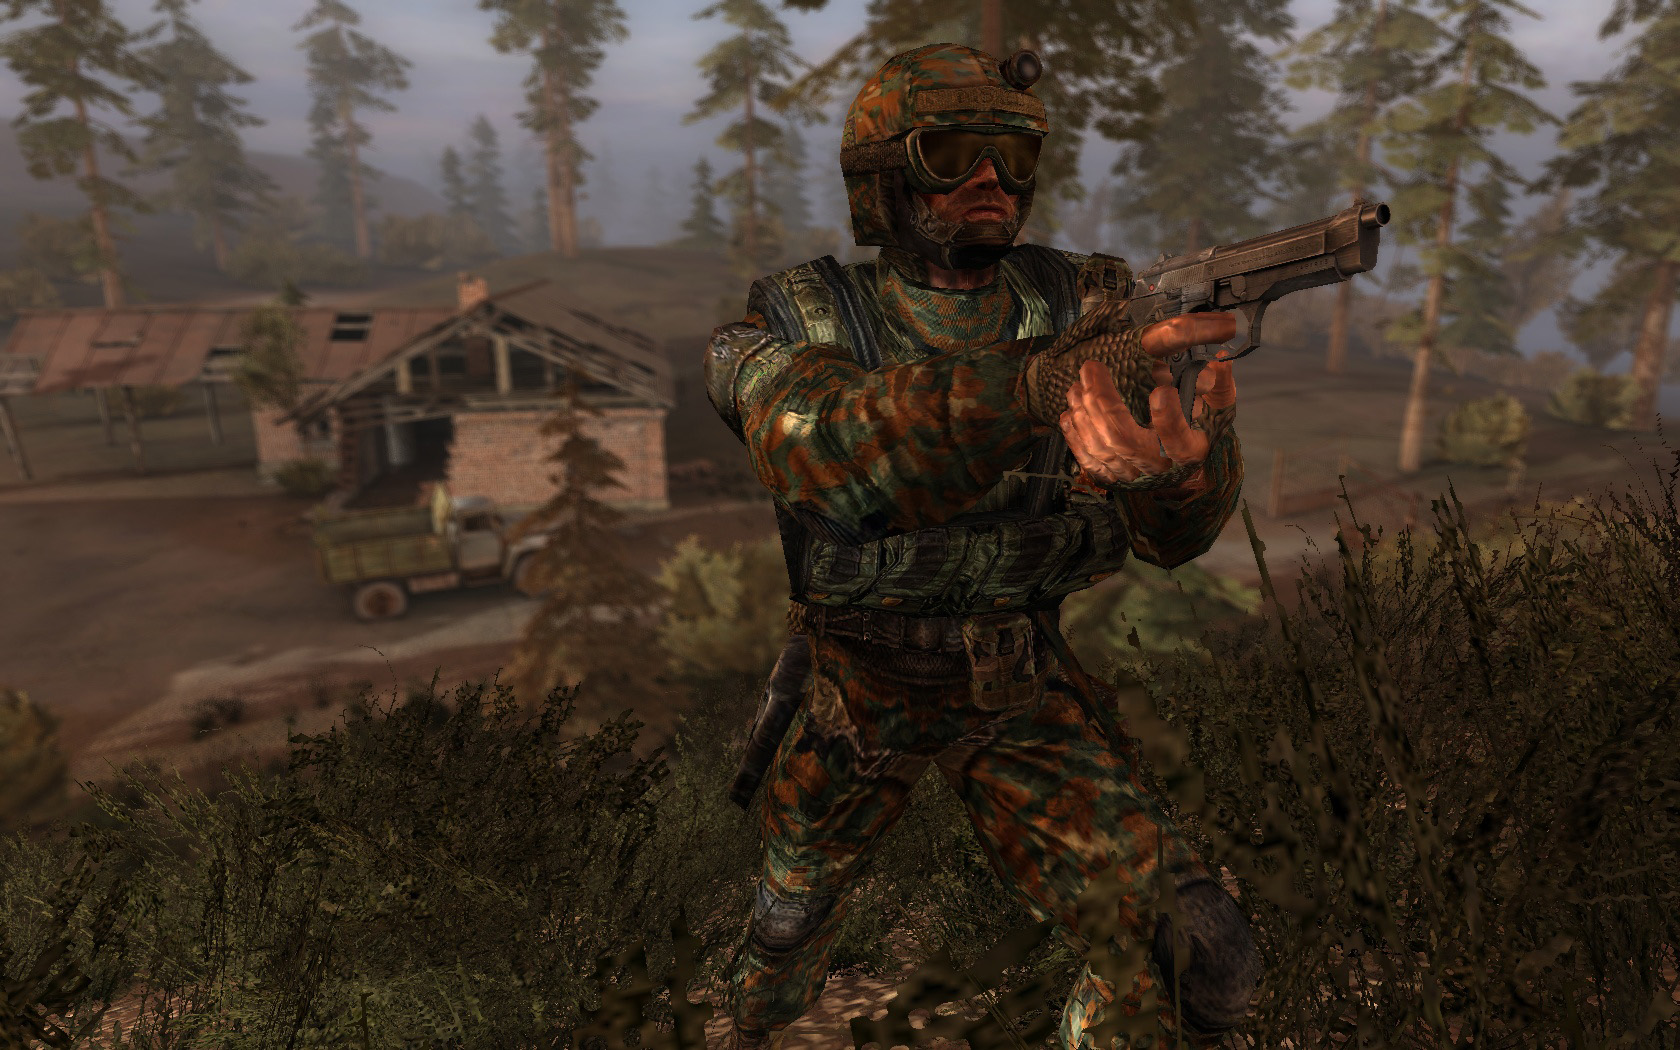 S.T.A.L.K.E.R.: Call of Pripyat screenshot